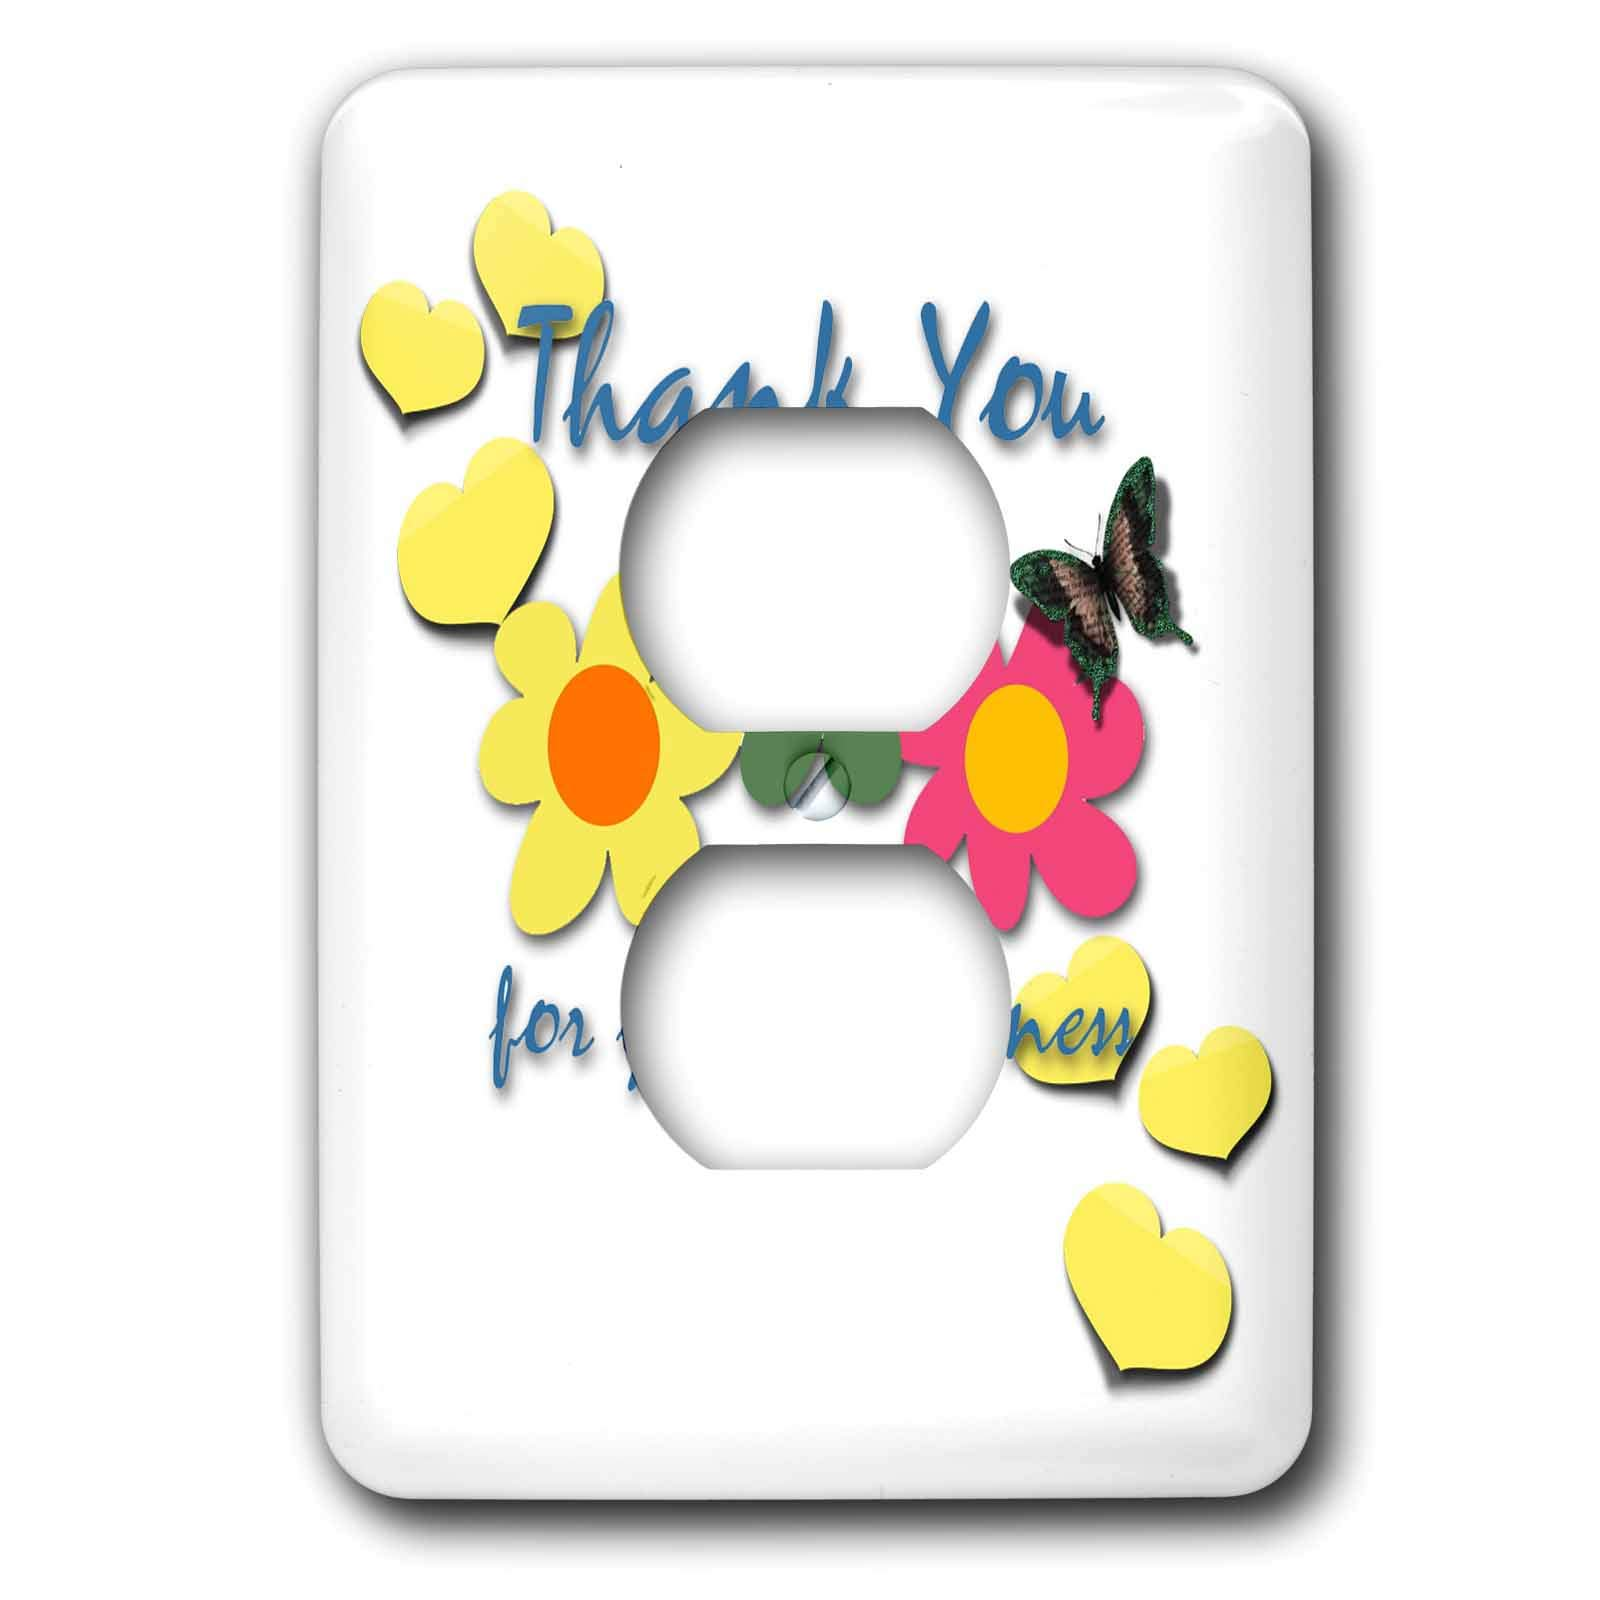 3dRose Spiritual Awakenings Thank You - Flowers and heart petals, and a pretty thank you always works - Light Switch Covers - 2 plug outlet cover (lsp_290274_6) by 3dRose